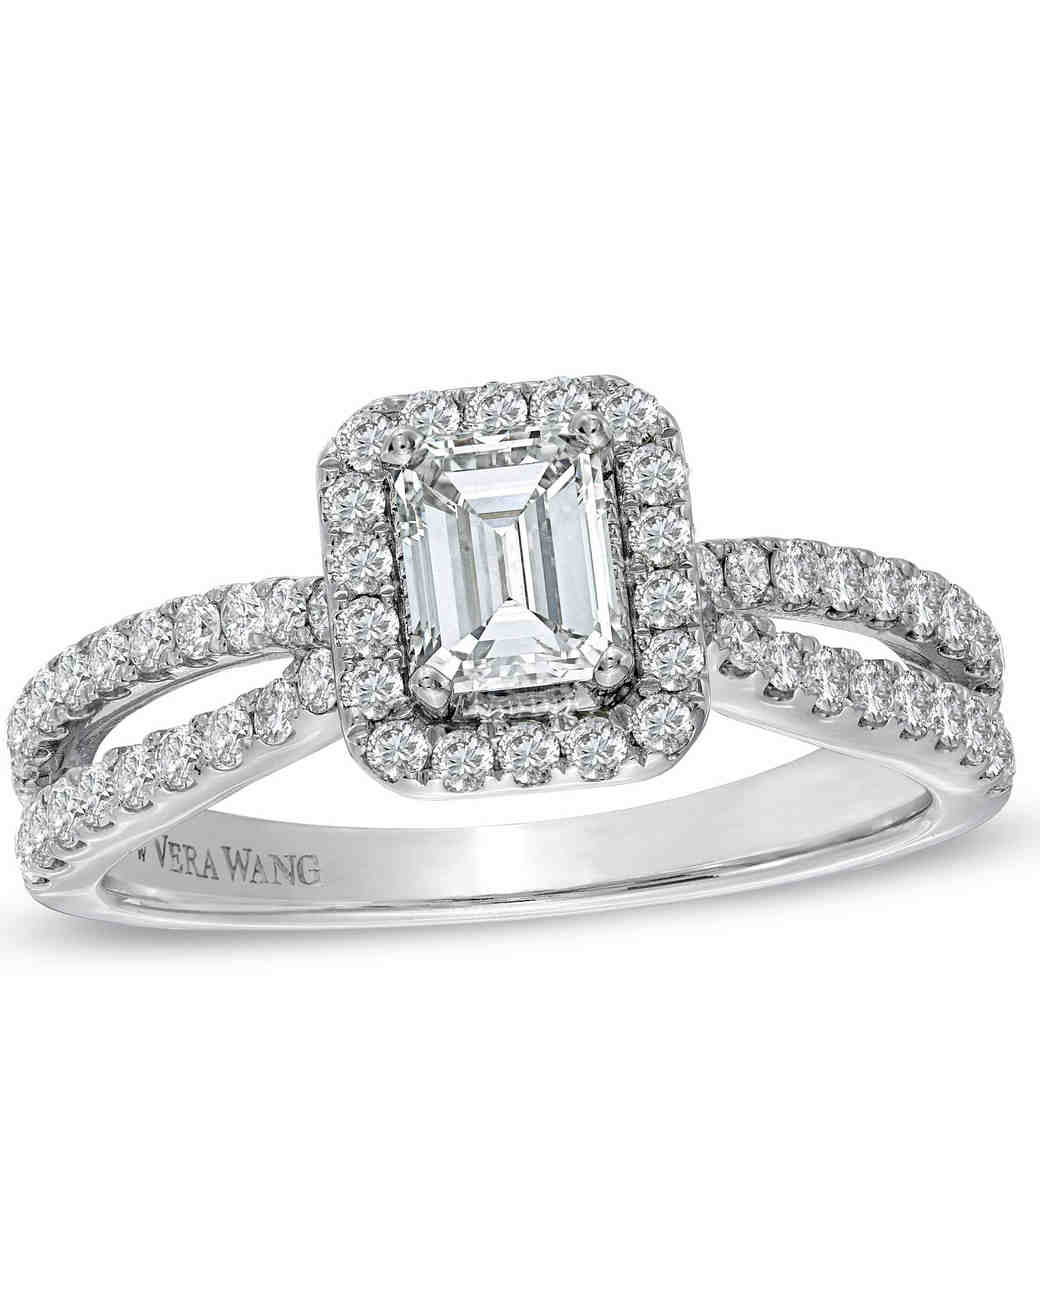 unique ring designers famous grace jewelry brilliant of top jeff list yurman wedding rings diamond david engagement gallery alsayegh designer